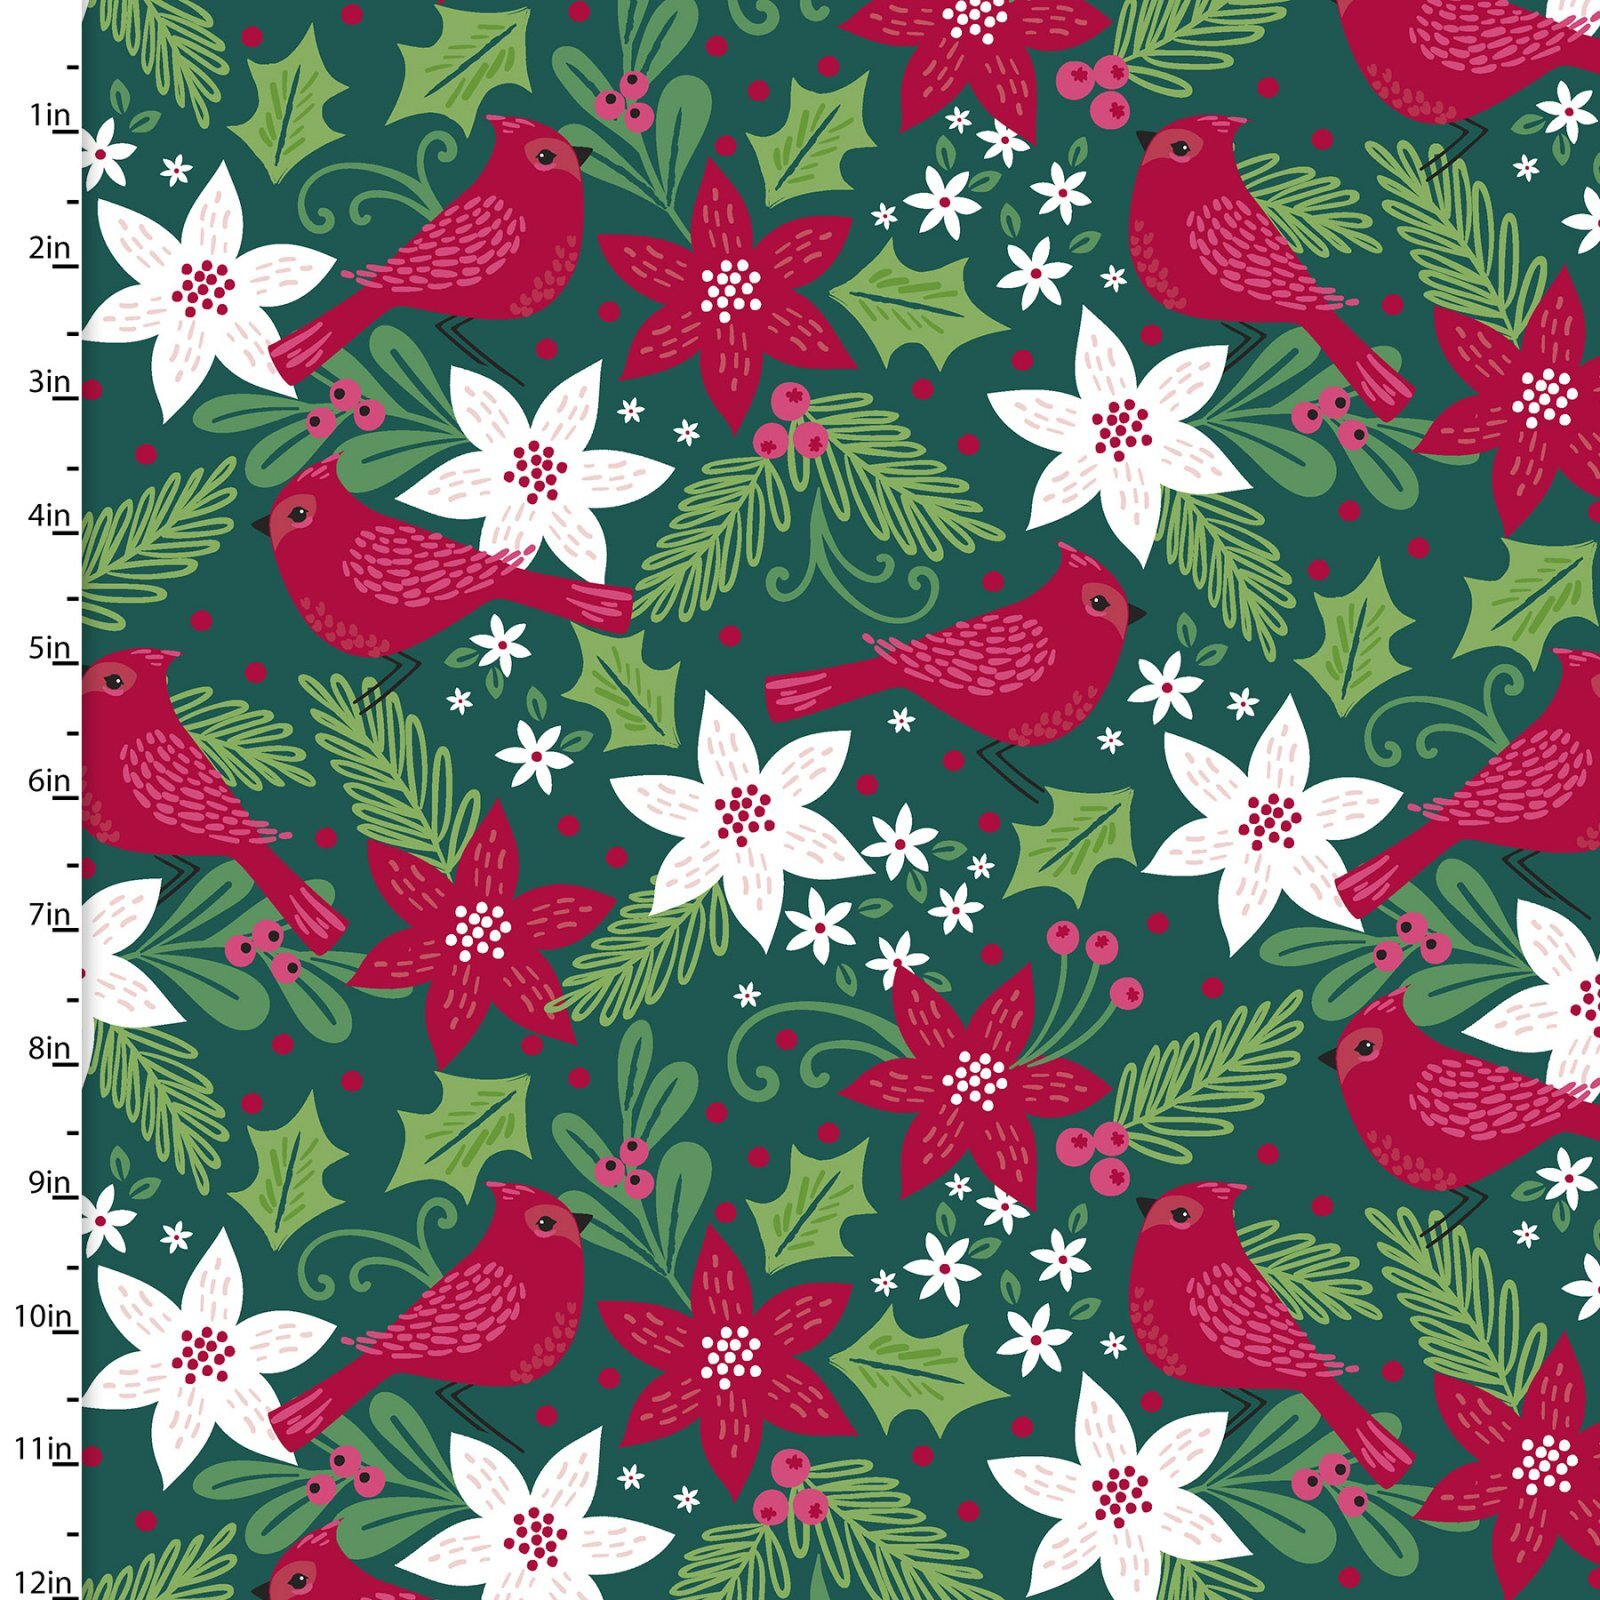 Holiday Wonder - Cardinals and Poinsettias on Green - 1/2m cut 58001